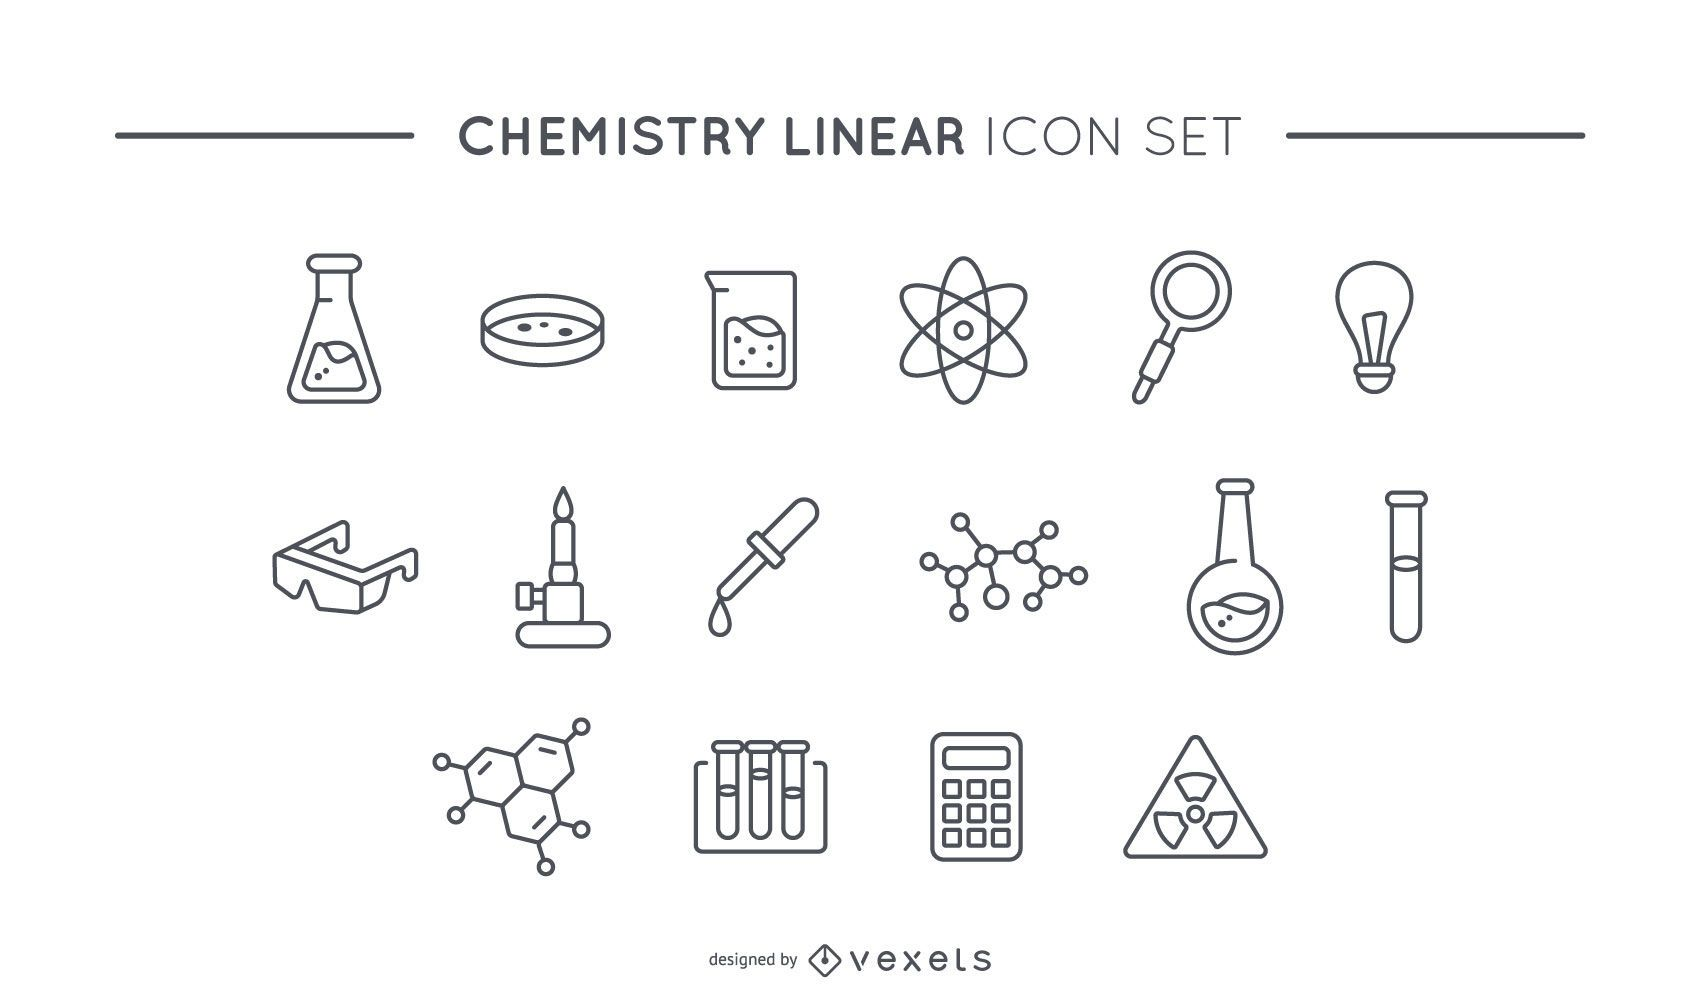 Chemistry linear icon set